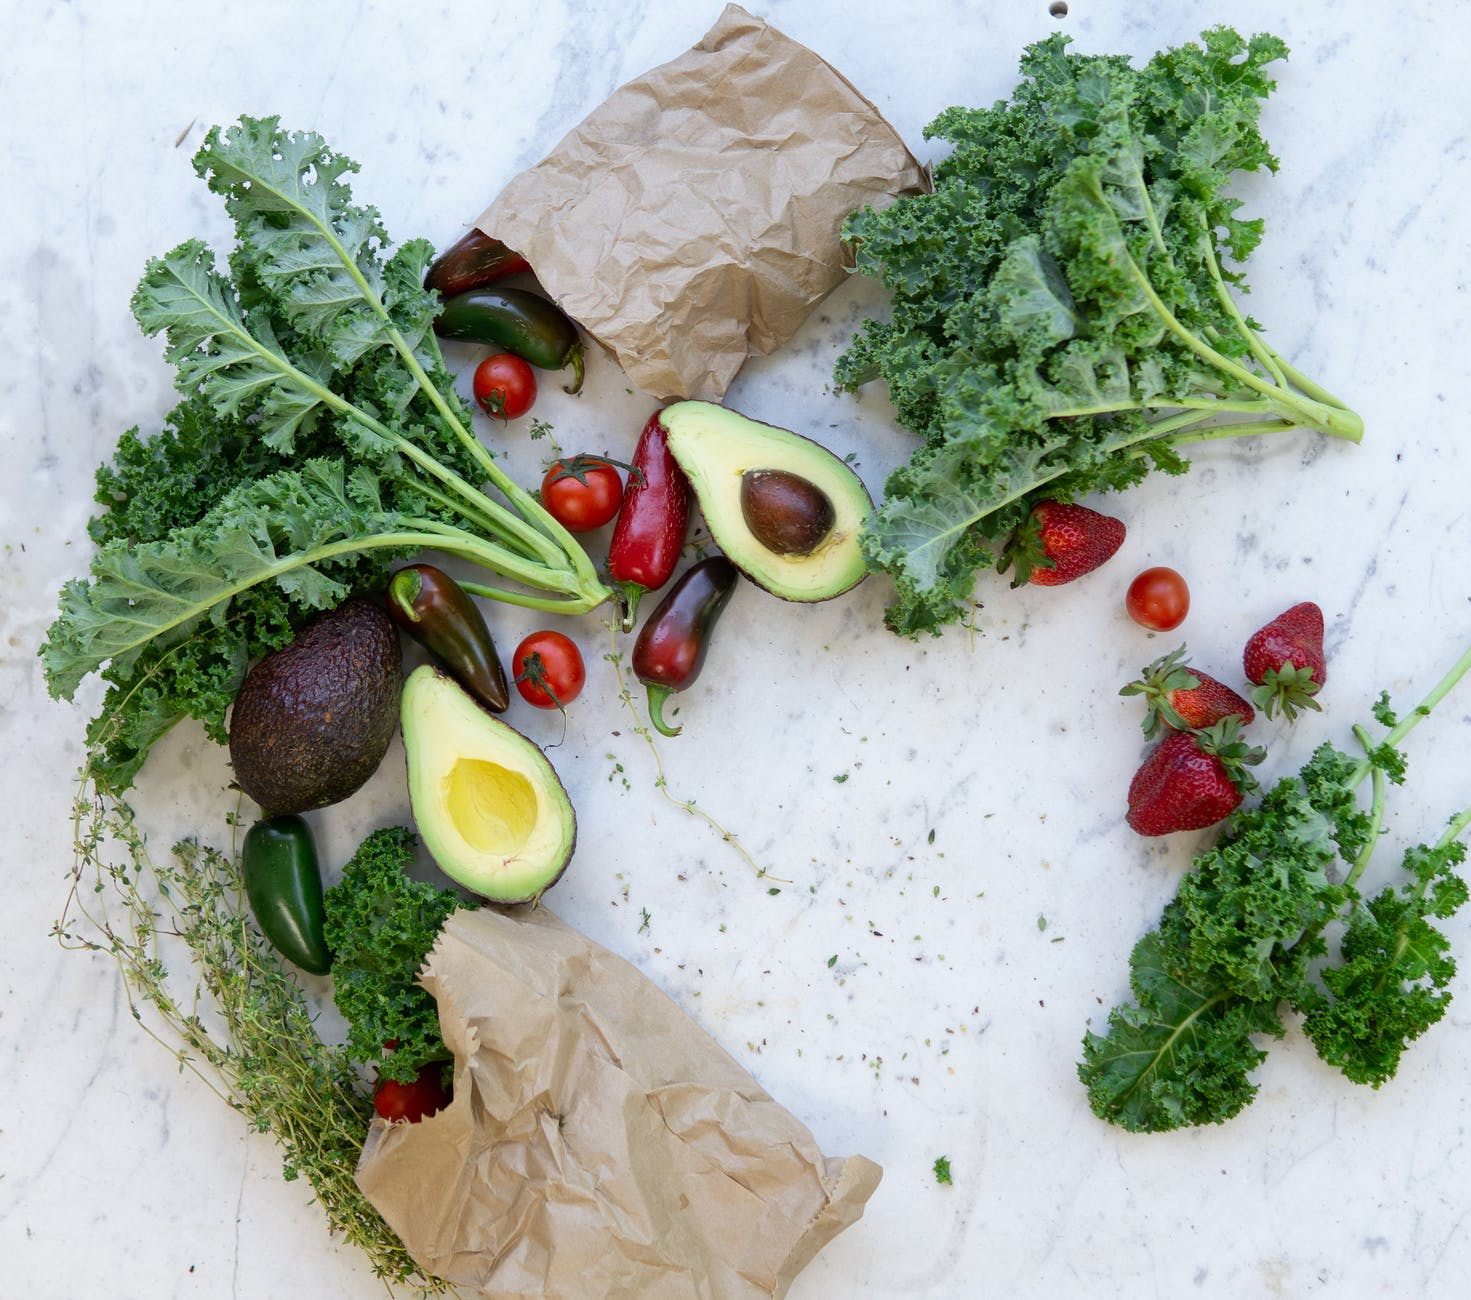 Consume your leafy greens to boost immunity and fight the global pandemic, explains John Spach